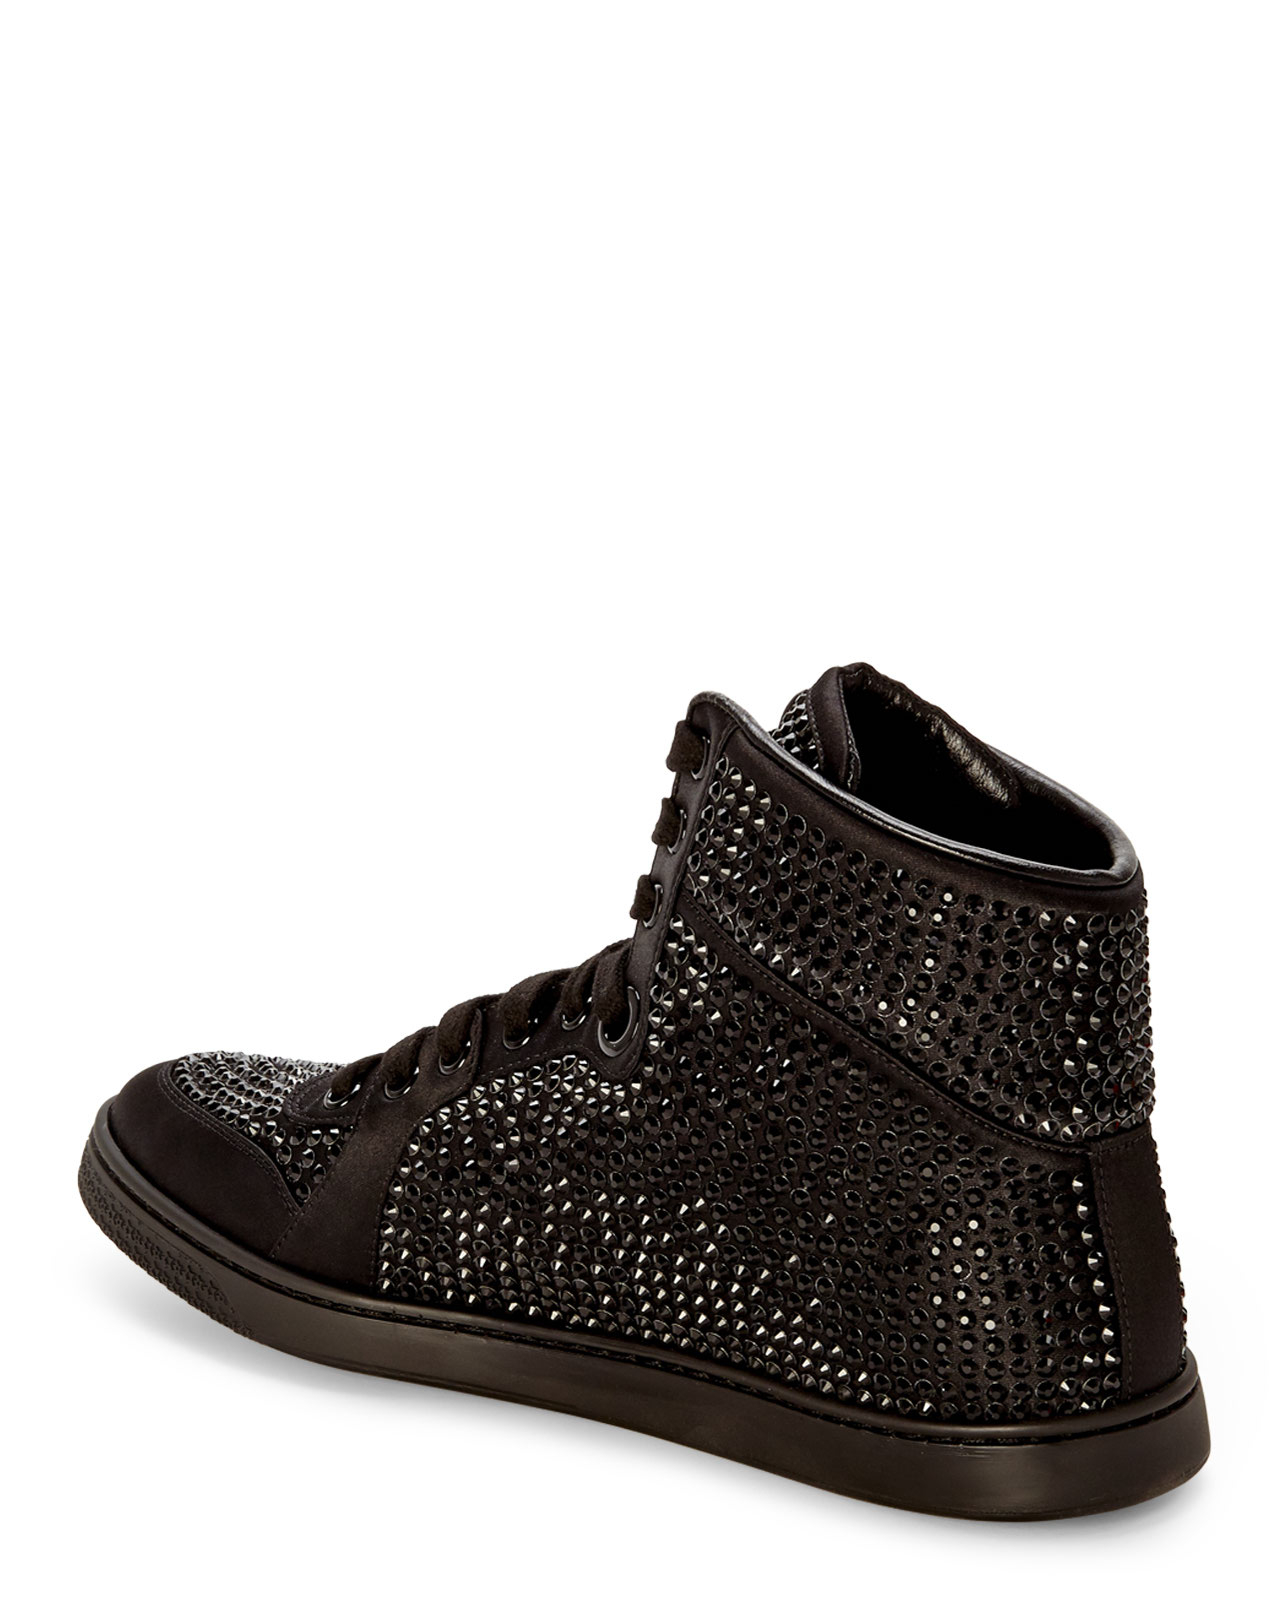 Cool Girl Studded Converse Silver studds Black high-top sneakers Punk styleish handmade customize shoes Flowerlodge. out of 5 stars () $ Favorite Add to See Knee High Studded Spiked Sneakers kaylastojek. 5 out of 5 stars () $ Favorite Add to See similar items.